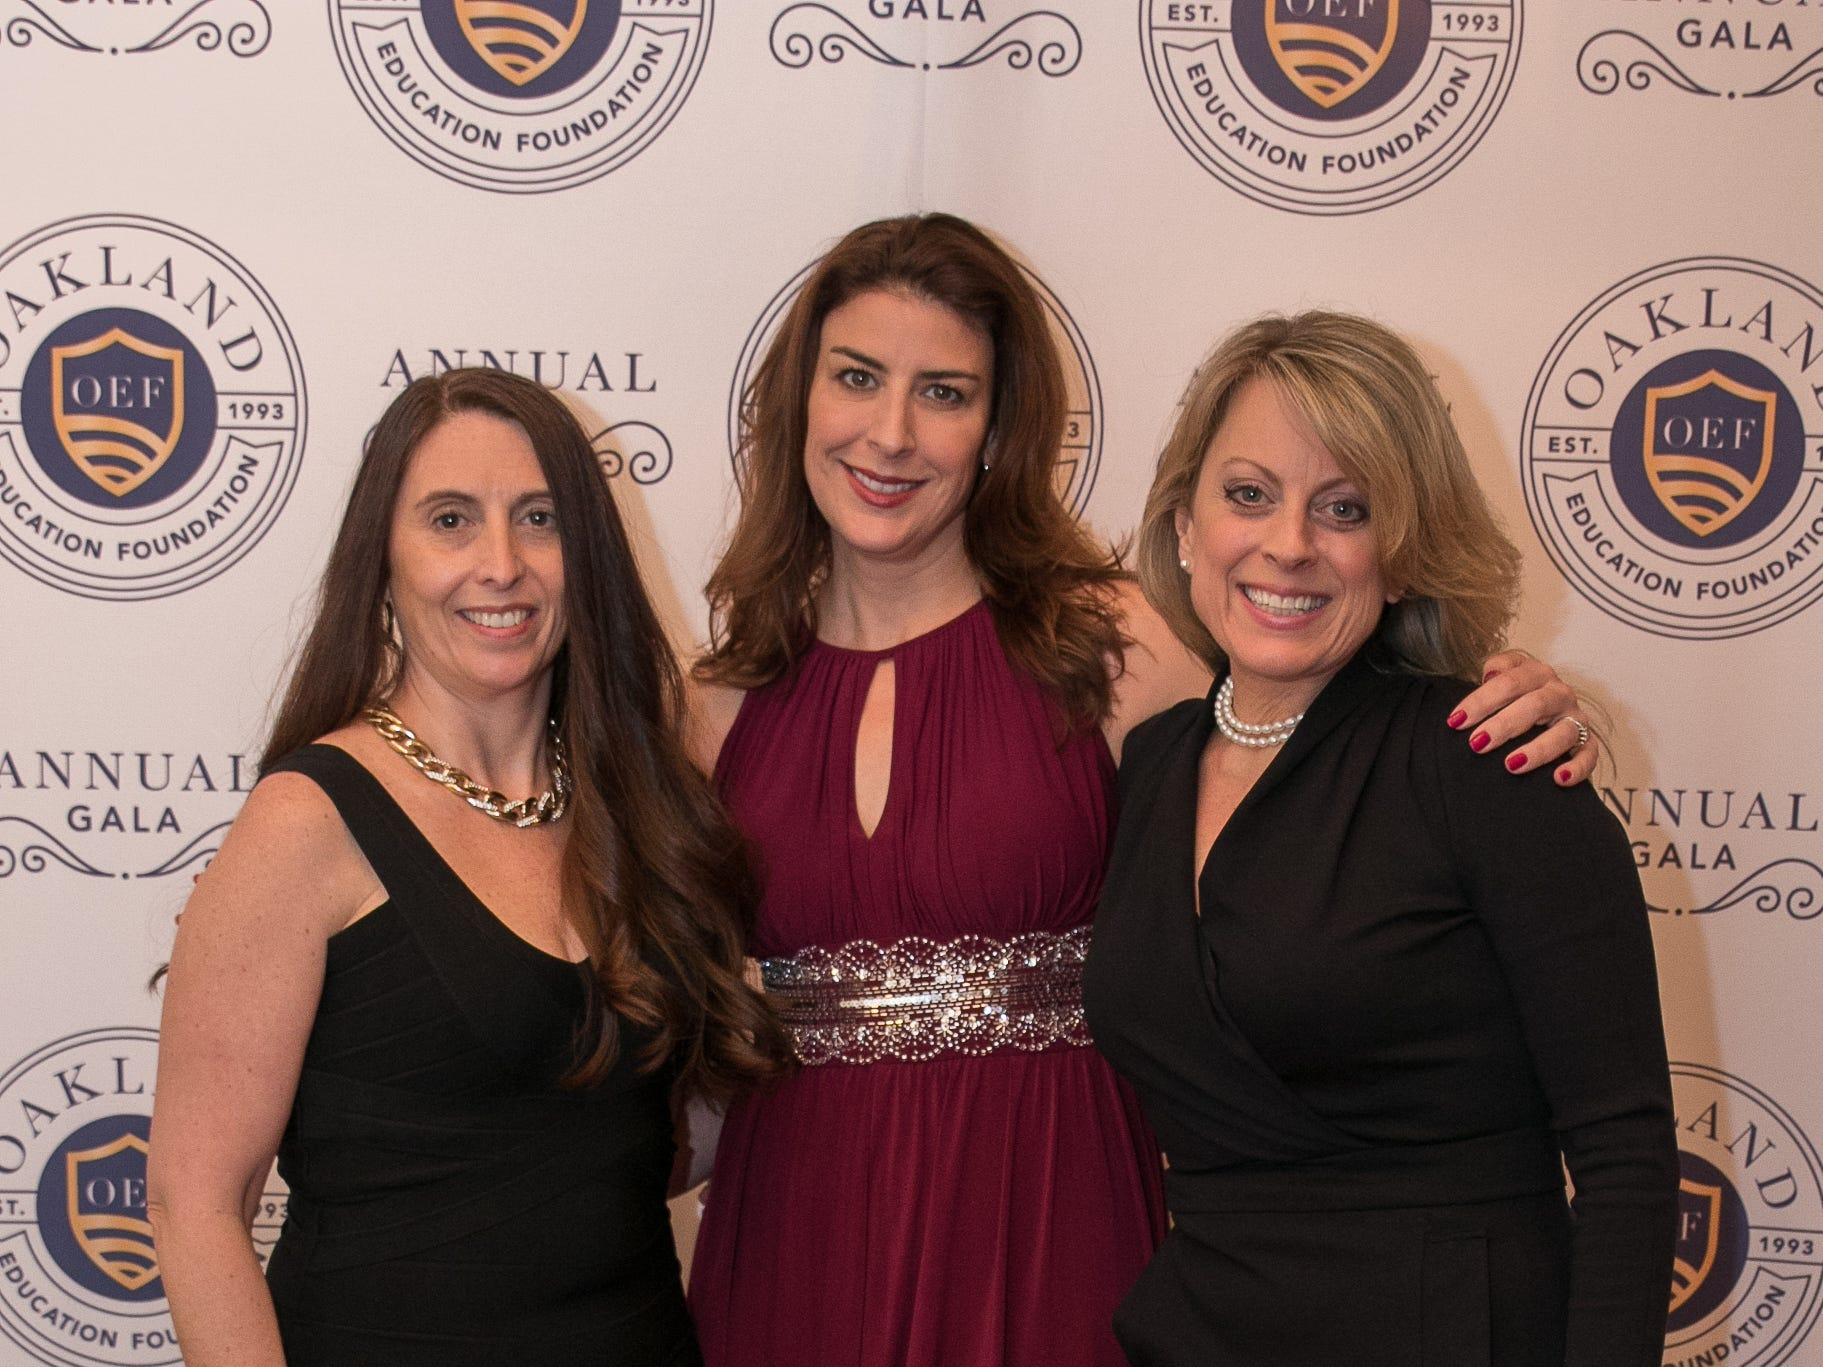 Kerry Forsdale, Tanya Mackenzie, Michelle Bardgett. The Oakland Education Foundation held their 25th Anniversary Casino Night Gala at Preakness Hills Country Club in Wayne. 03/16/2019